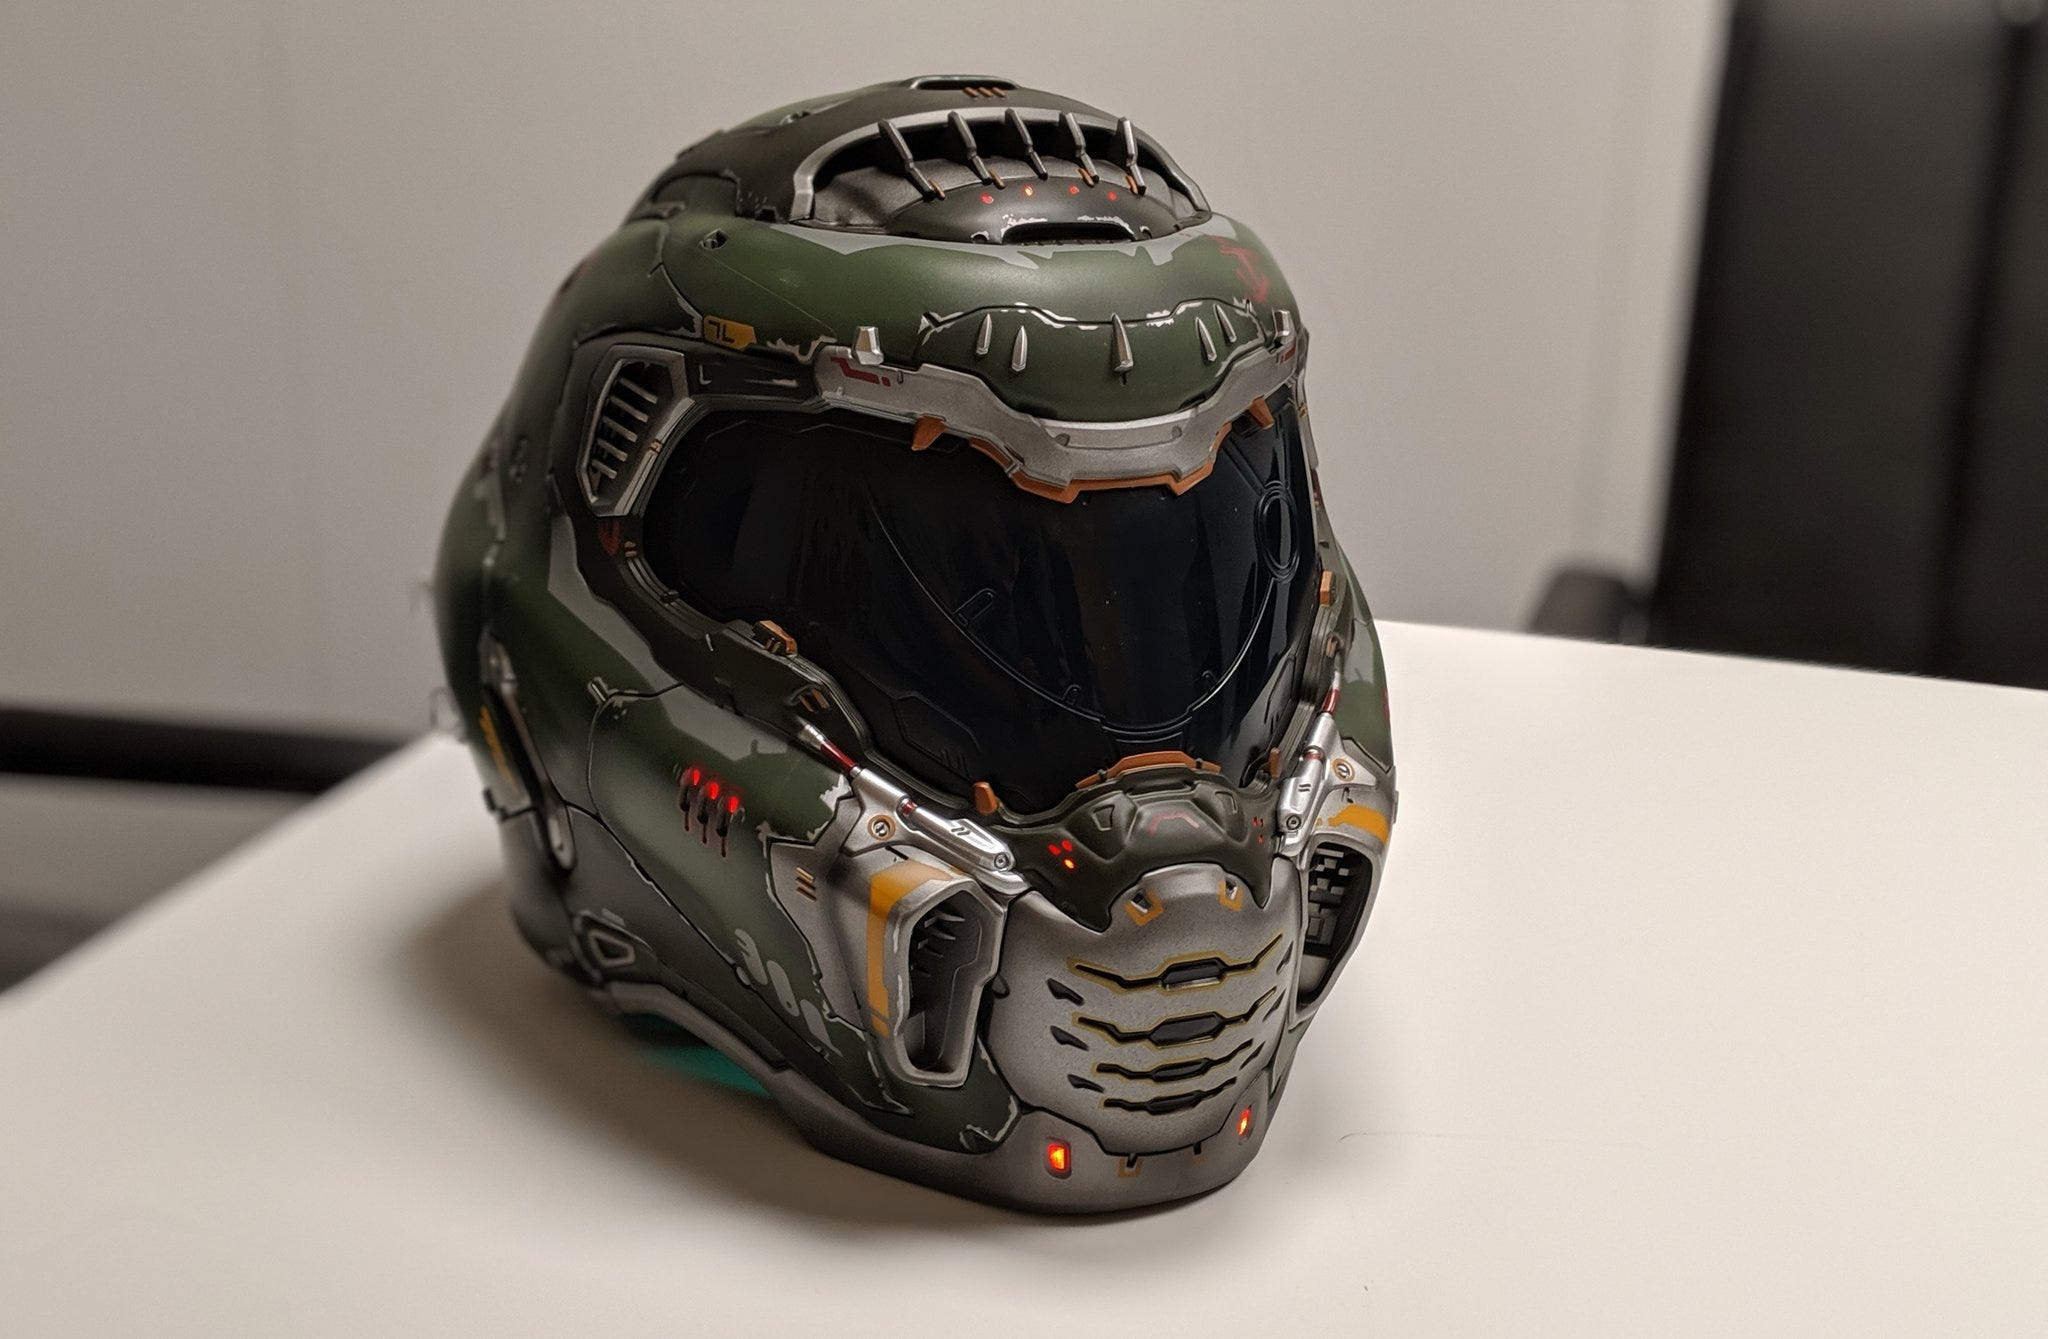 A real Doom Slayer helmet.